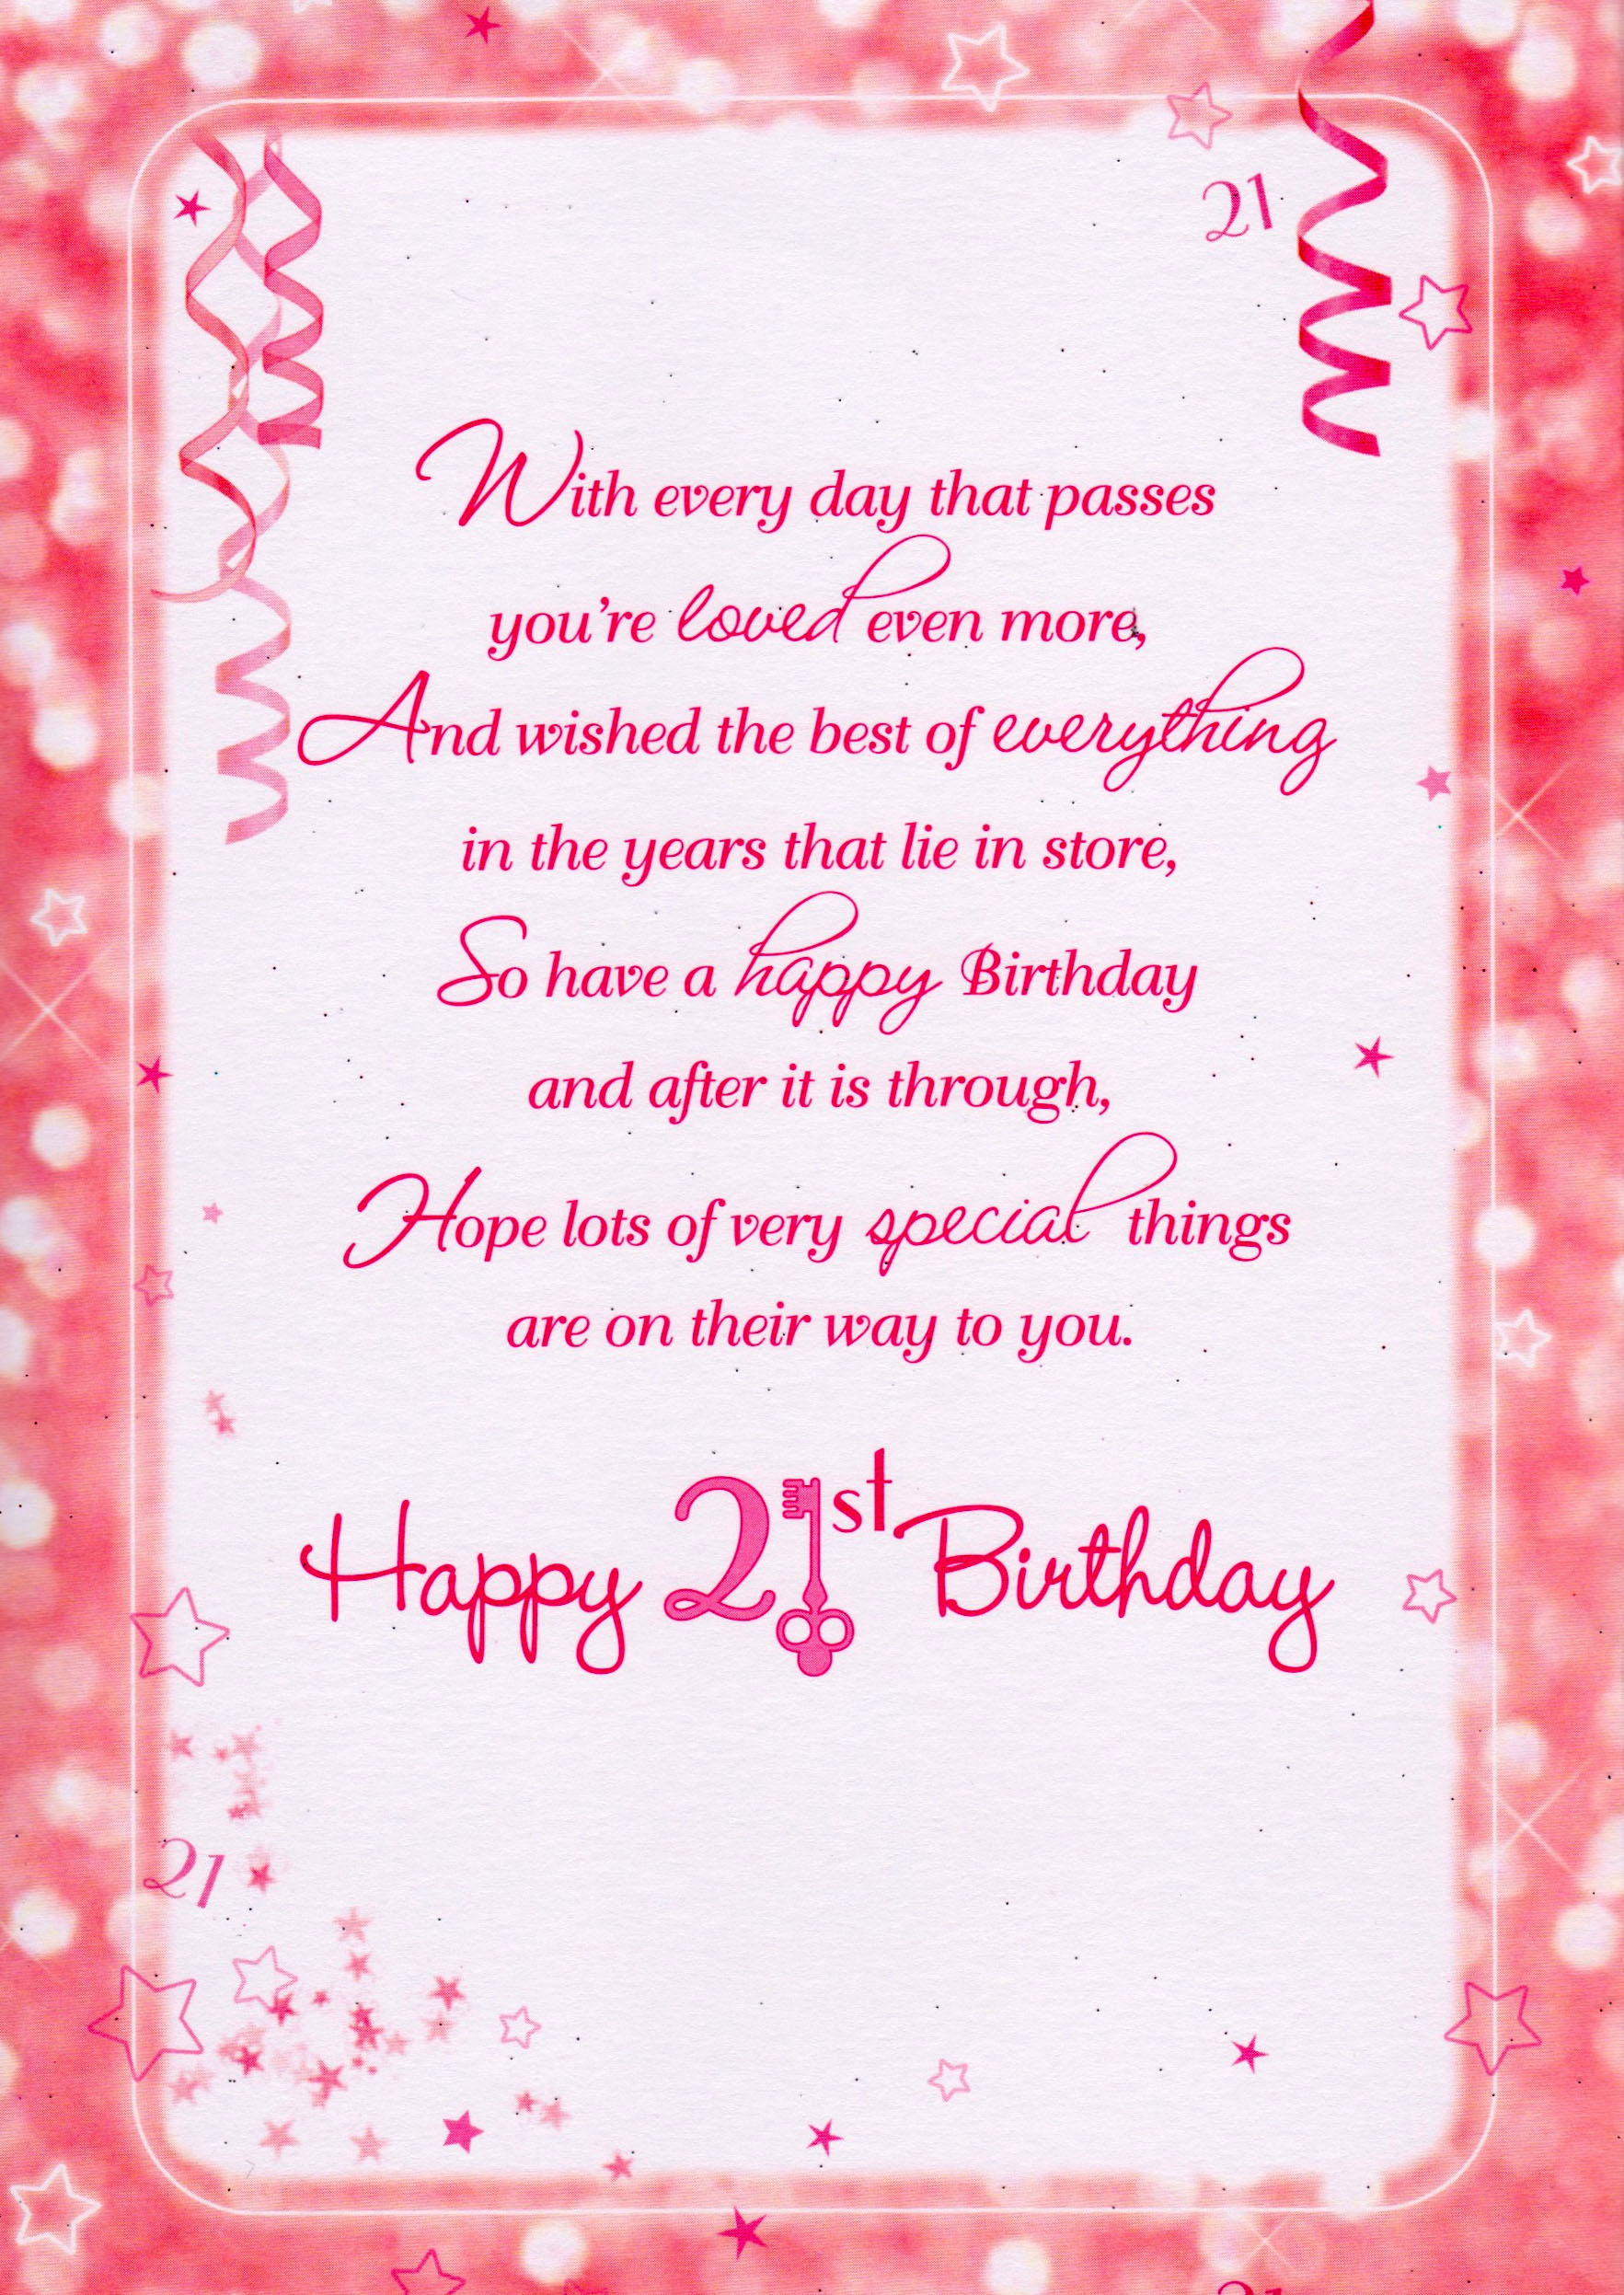 21st birthday greeting card messages ; 21st-birthday-wishes-and-messages-best-friend-1